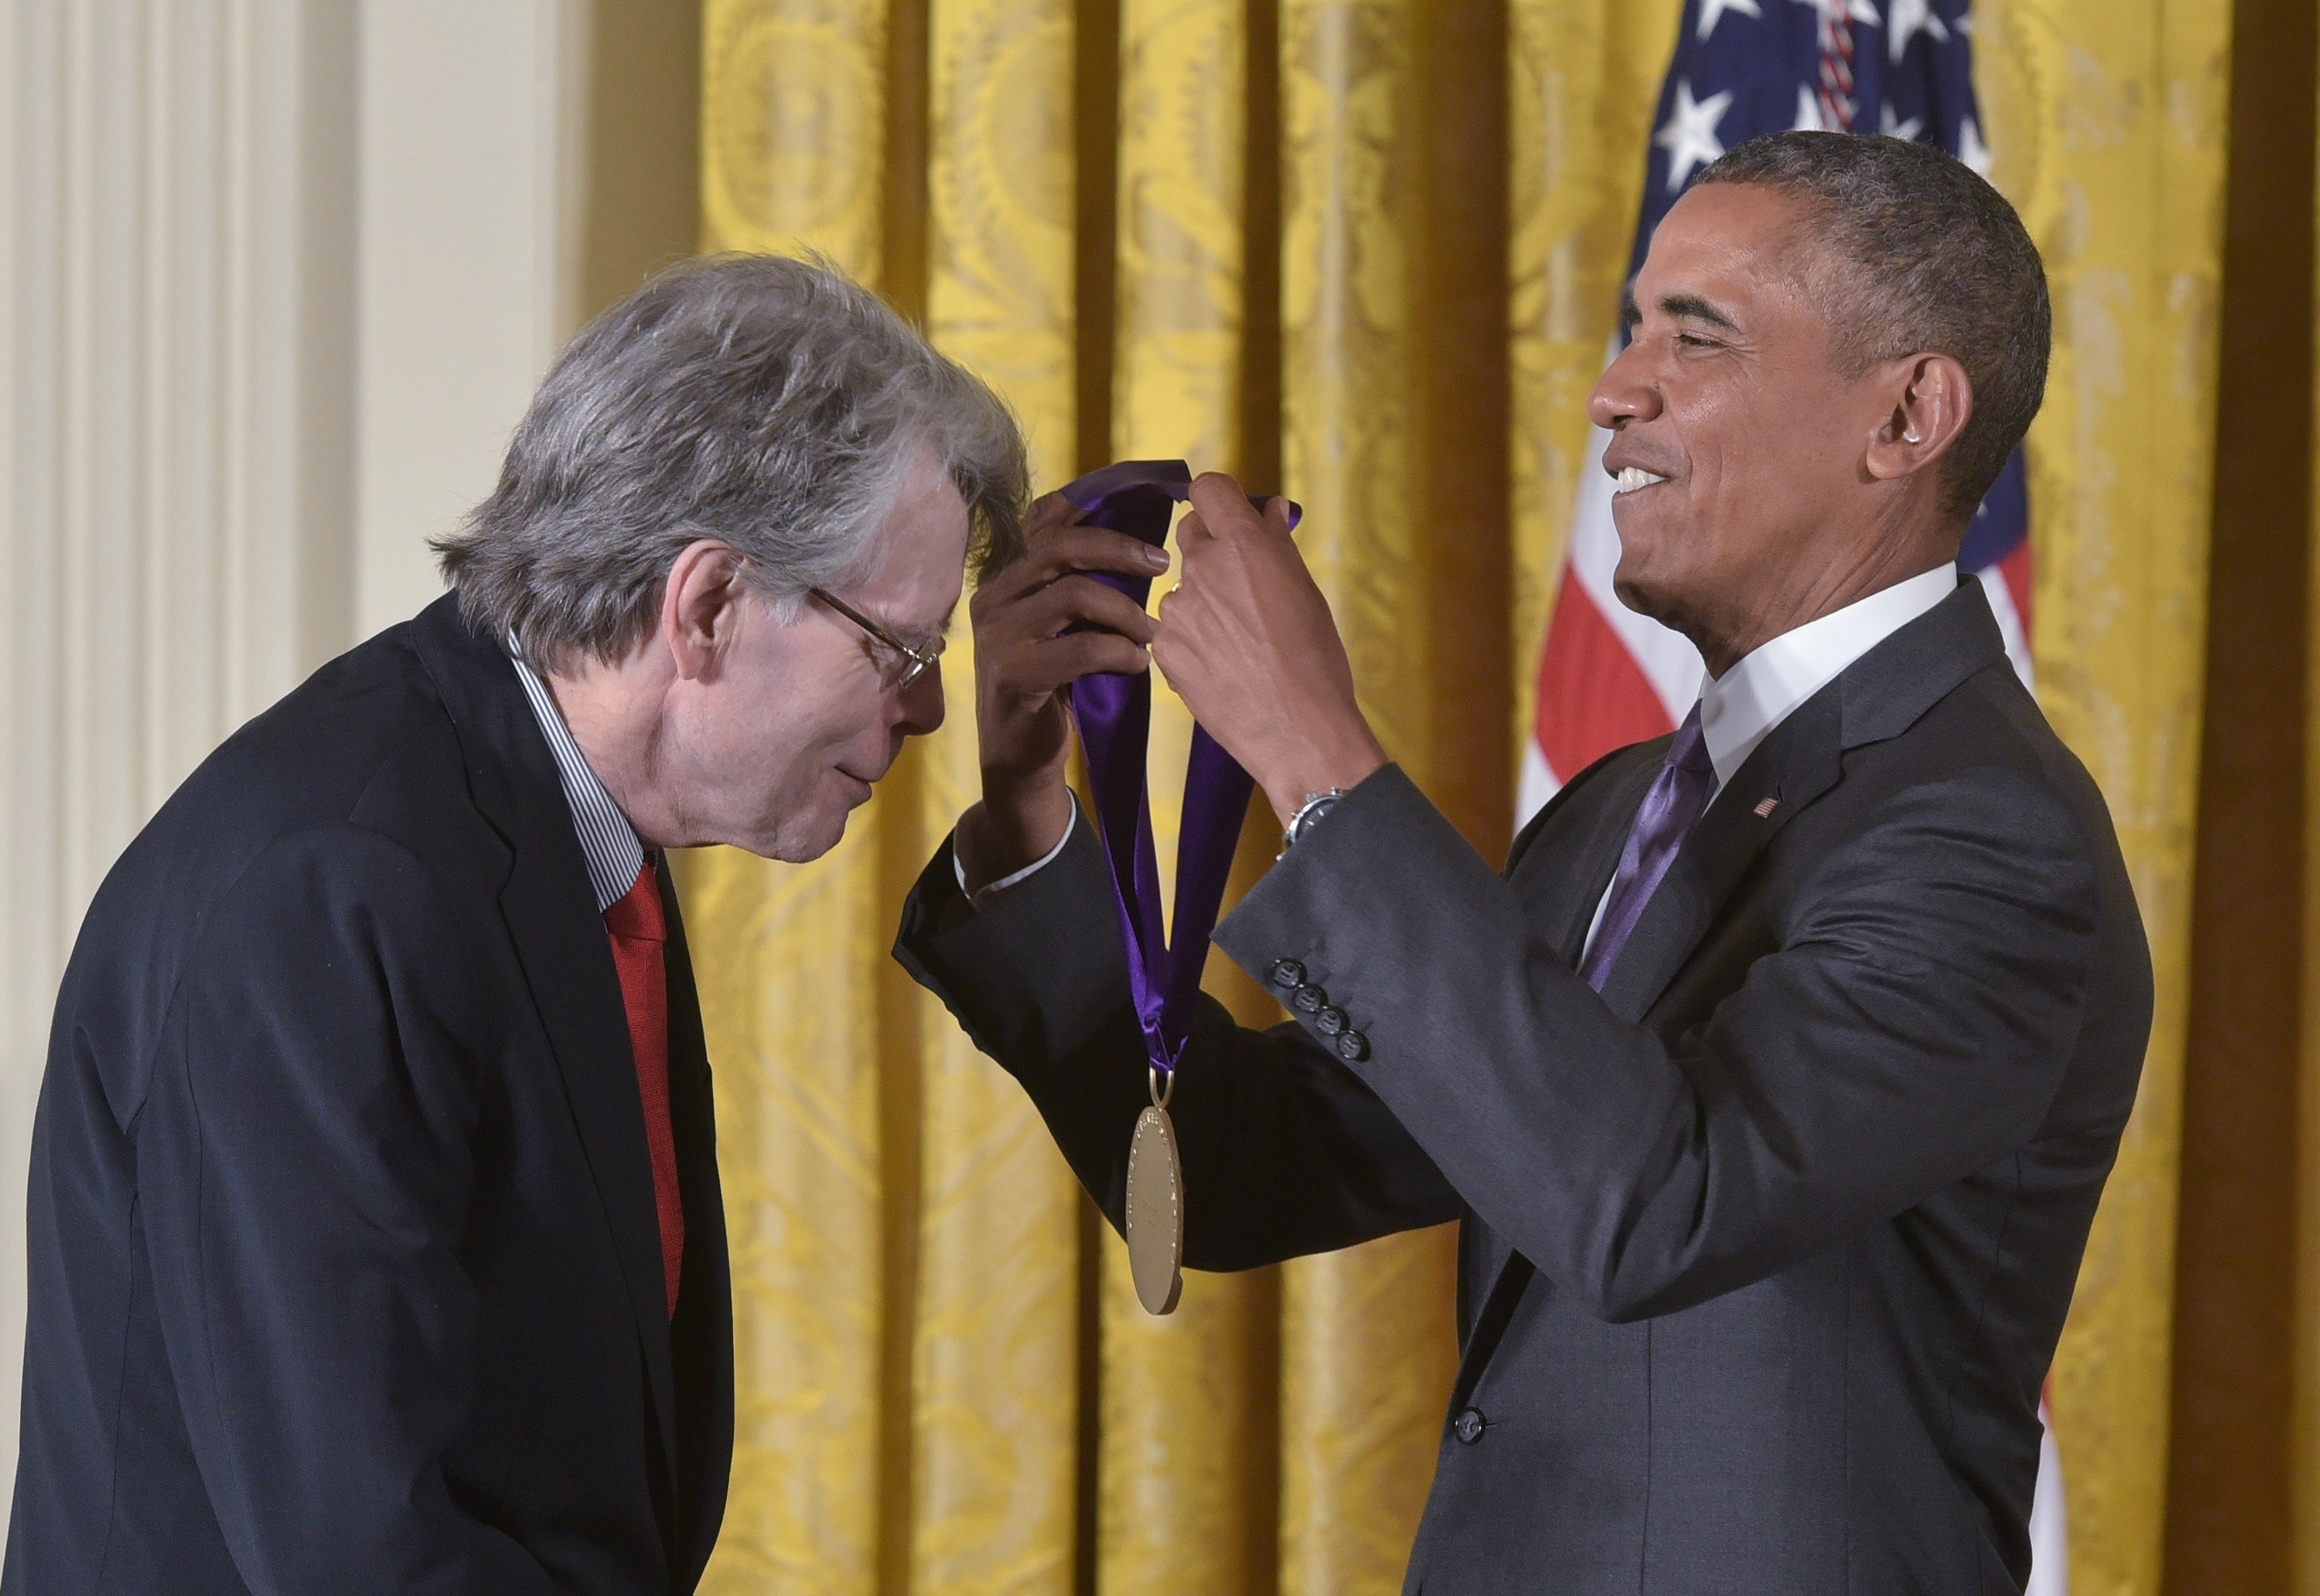 US President Barack Obama presents the 2014 National Medal of Arts to author Stephen King during a ceremony in the East Room of the White House on September 10, 2015 in Washington, DC. (Photo credit MANDEL NGAN/AFP/Getty Images)